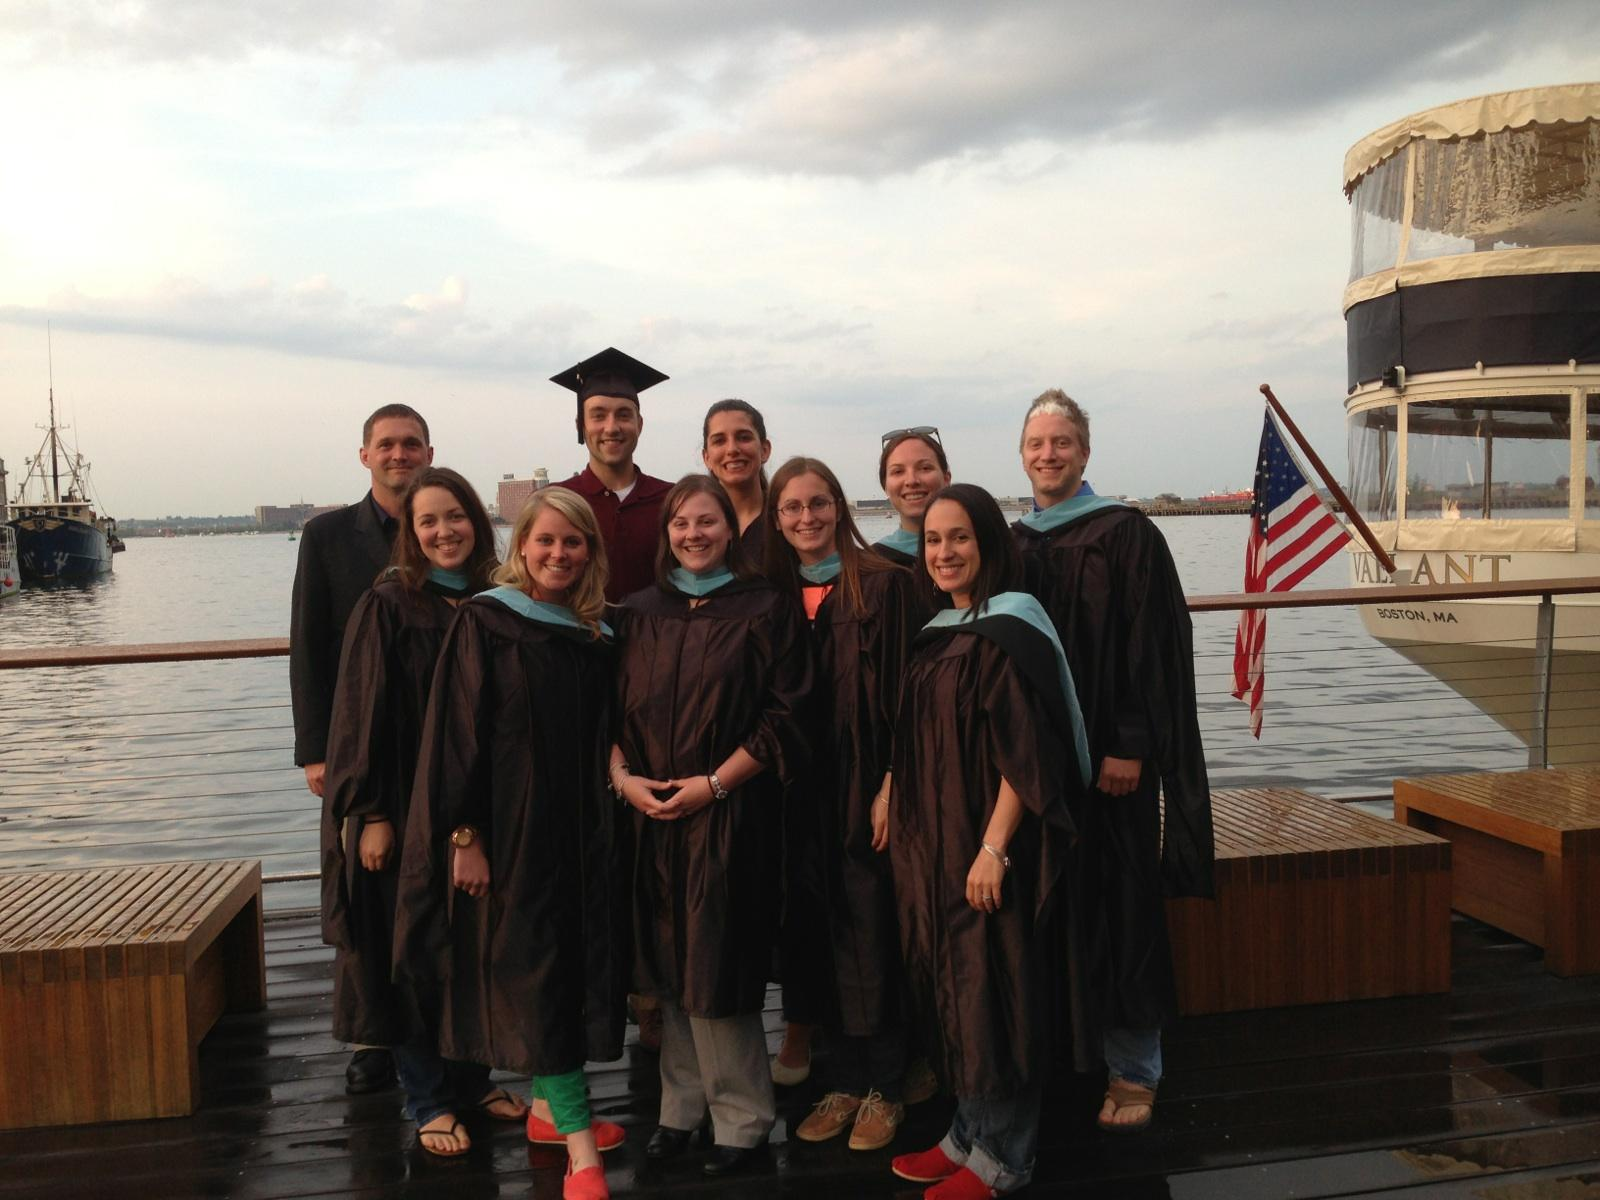 2013 graduates at Jerry Remy's, the 'serious' picture